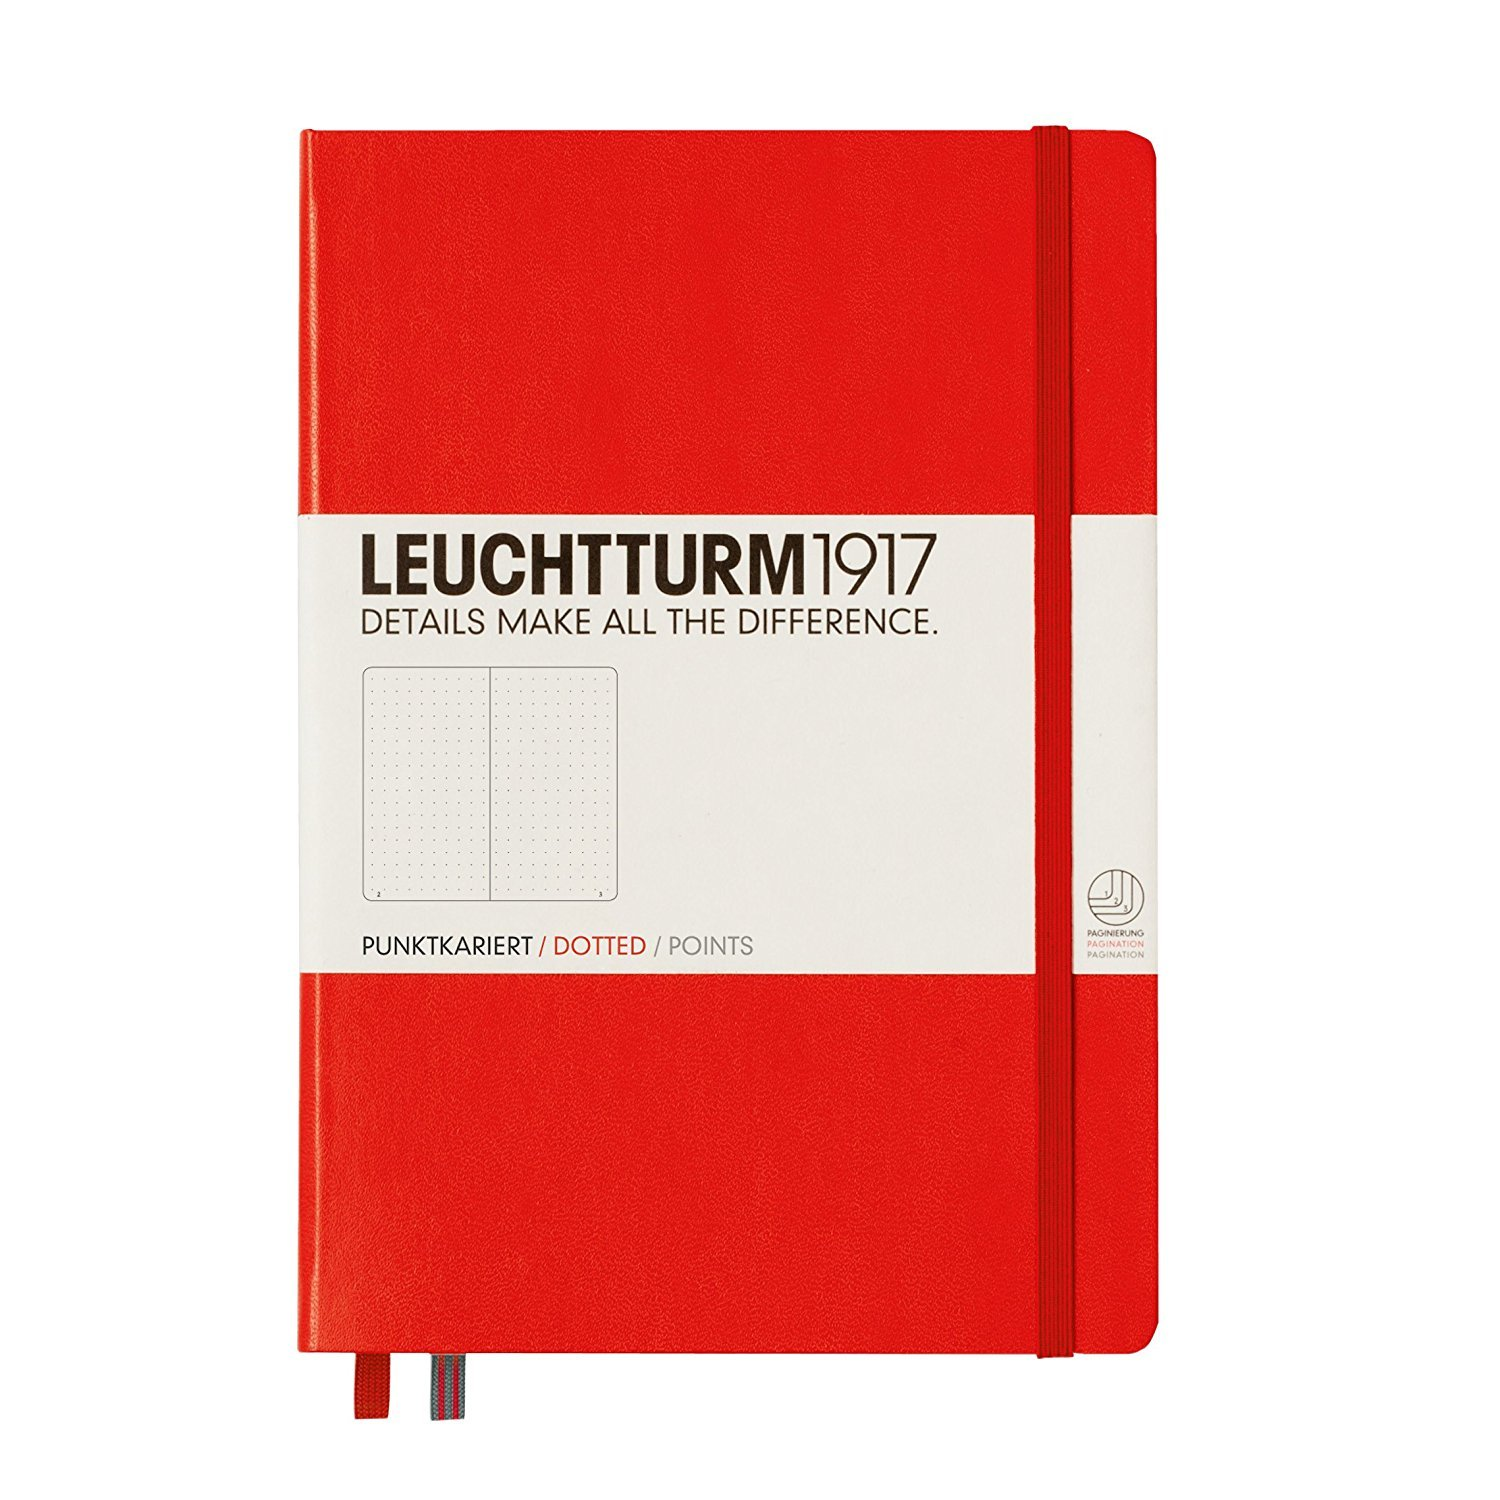 Leuchtturm1917 Medium Size Hardcover A5 Notebook - Dotted Pages, Red Cover